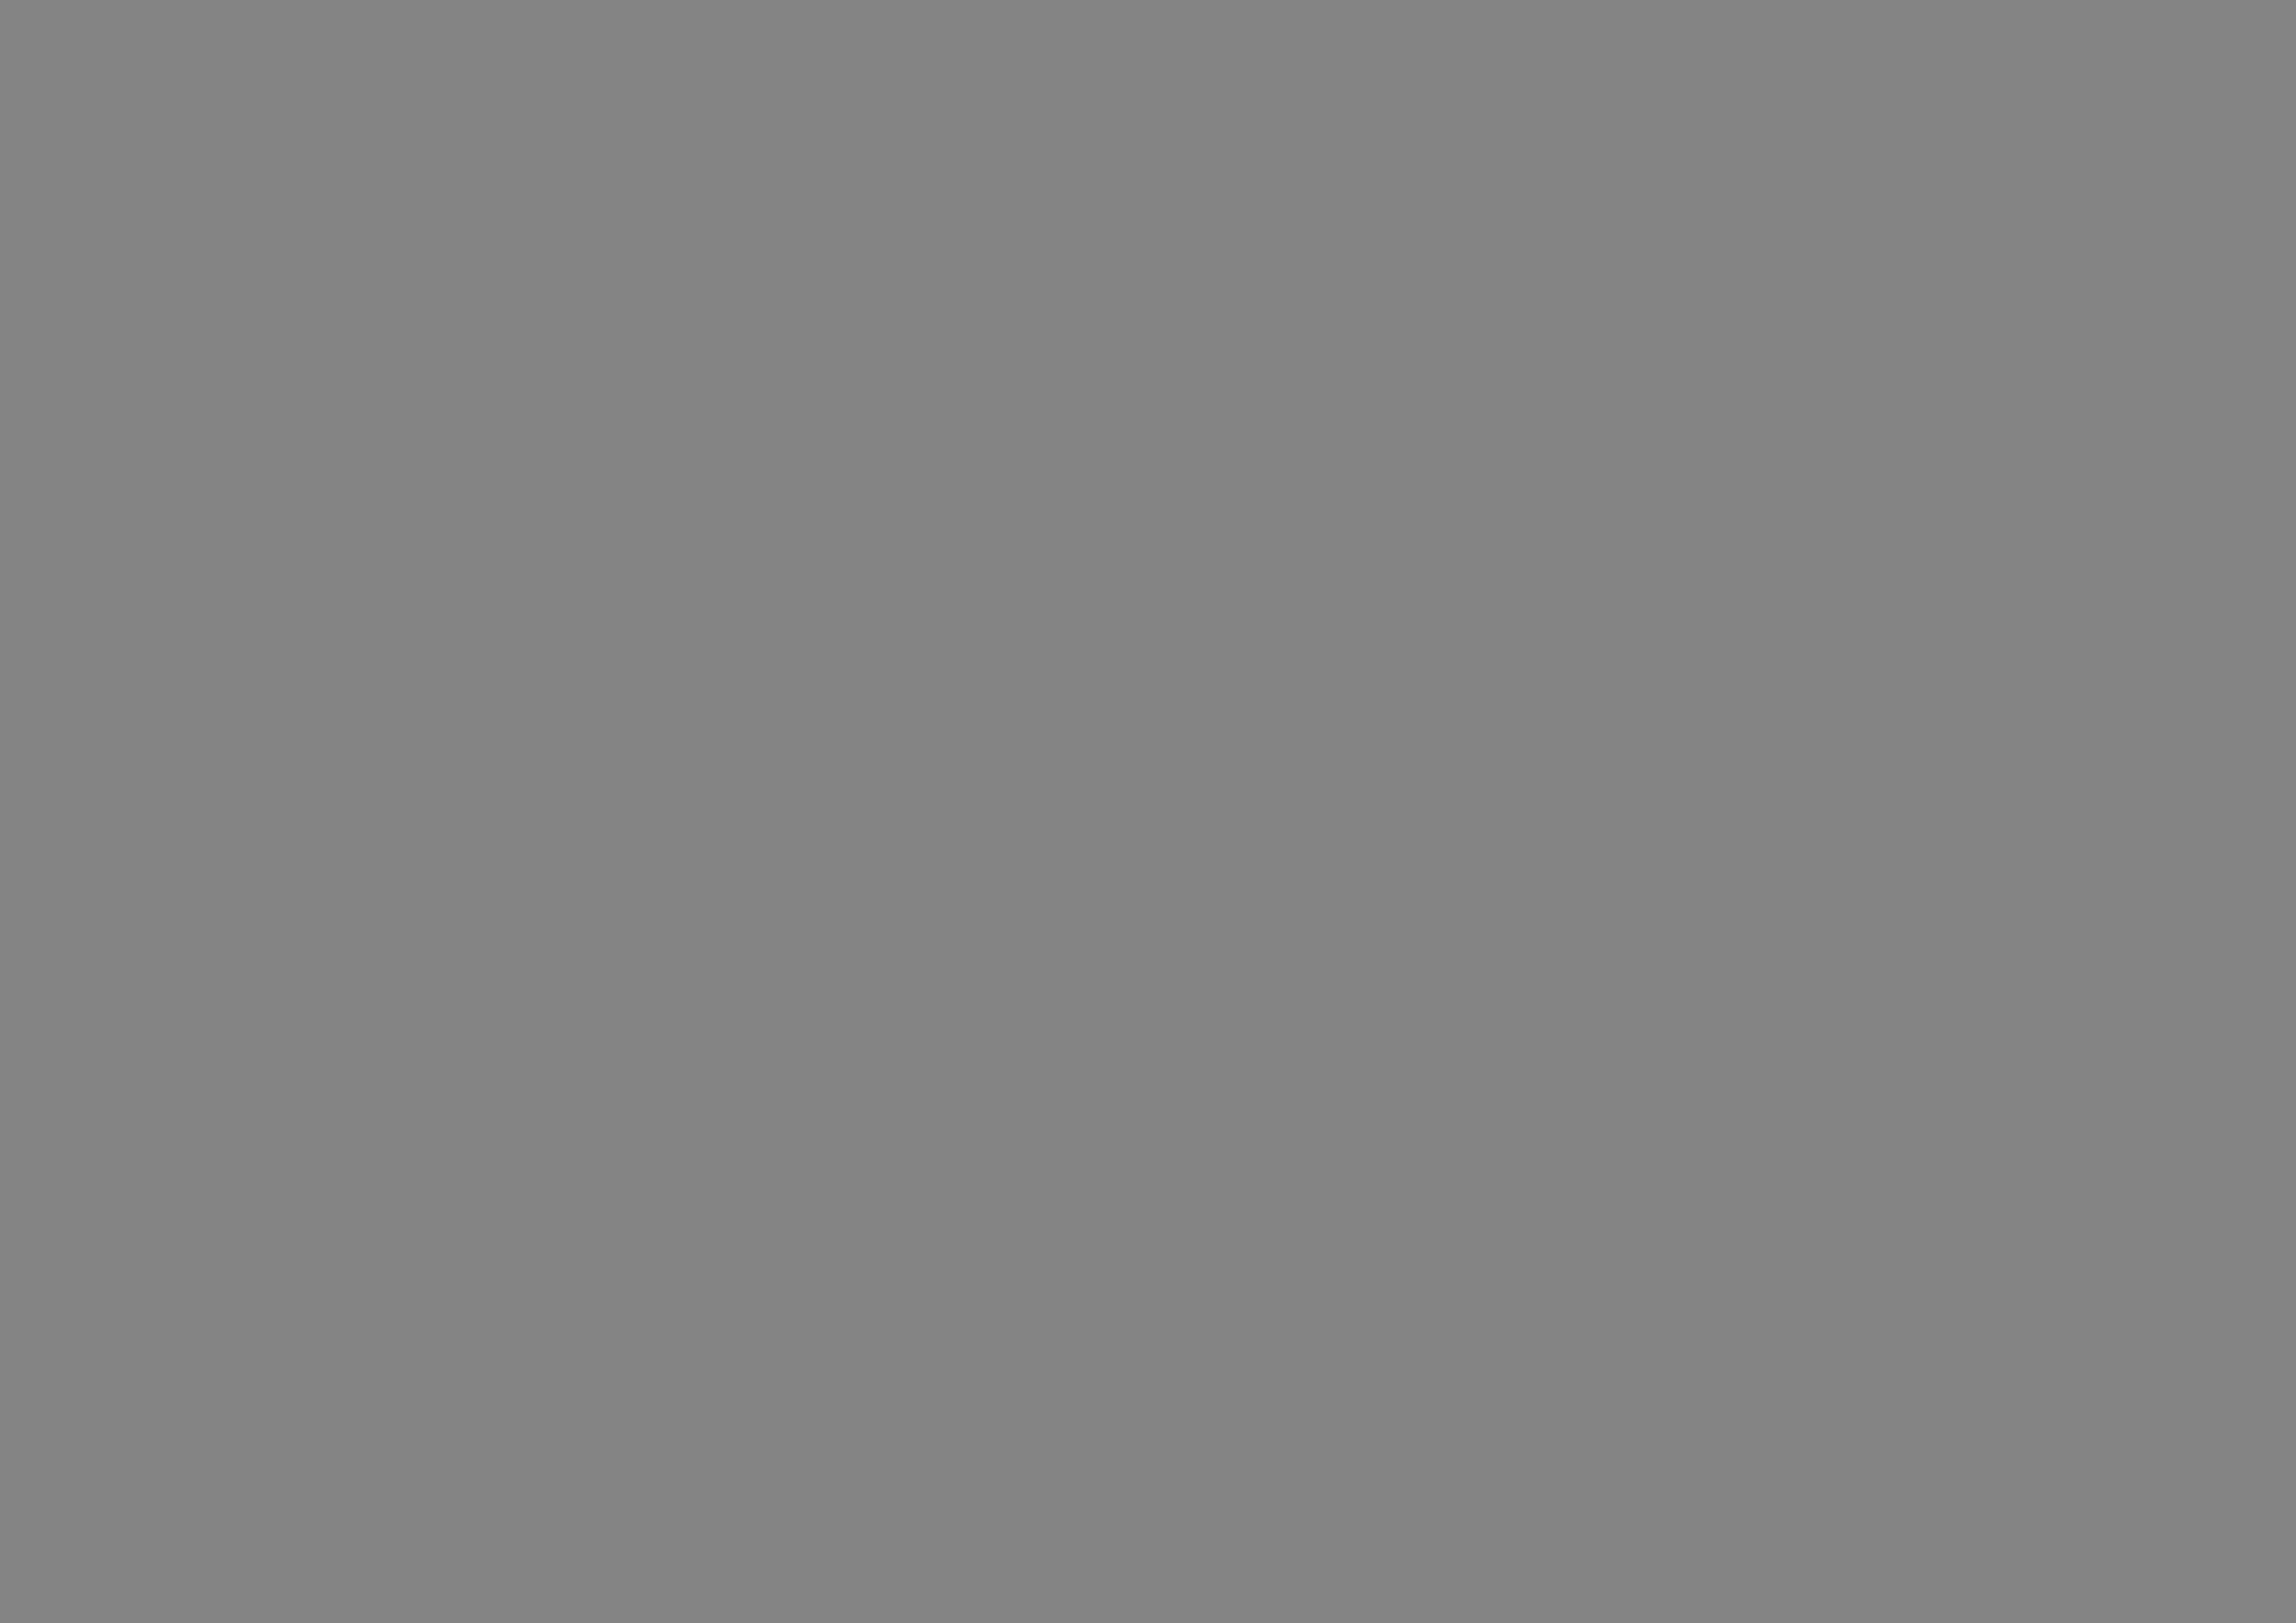 3508x2480 Old Silver Solid Color Background